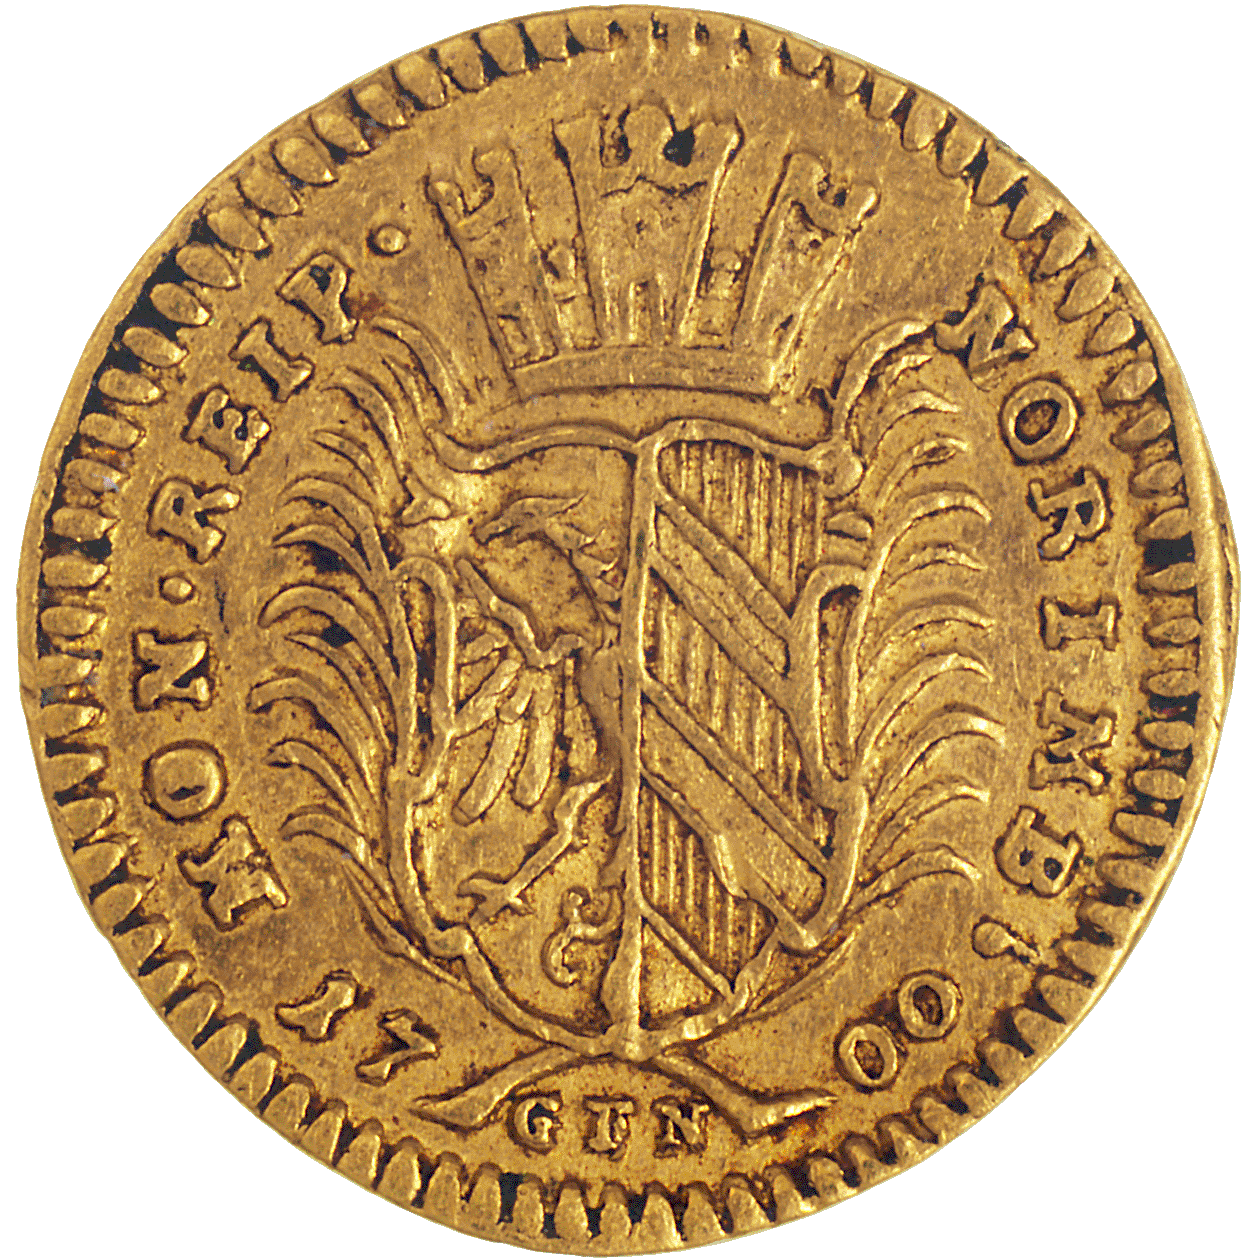 Holy Roman Empire, City of Nuremberg, 1/4 Ducat (obverse)